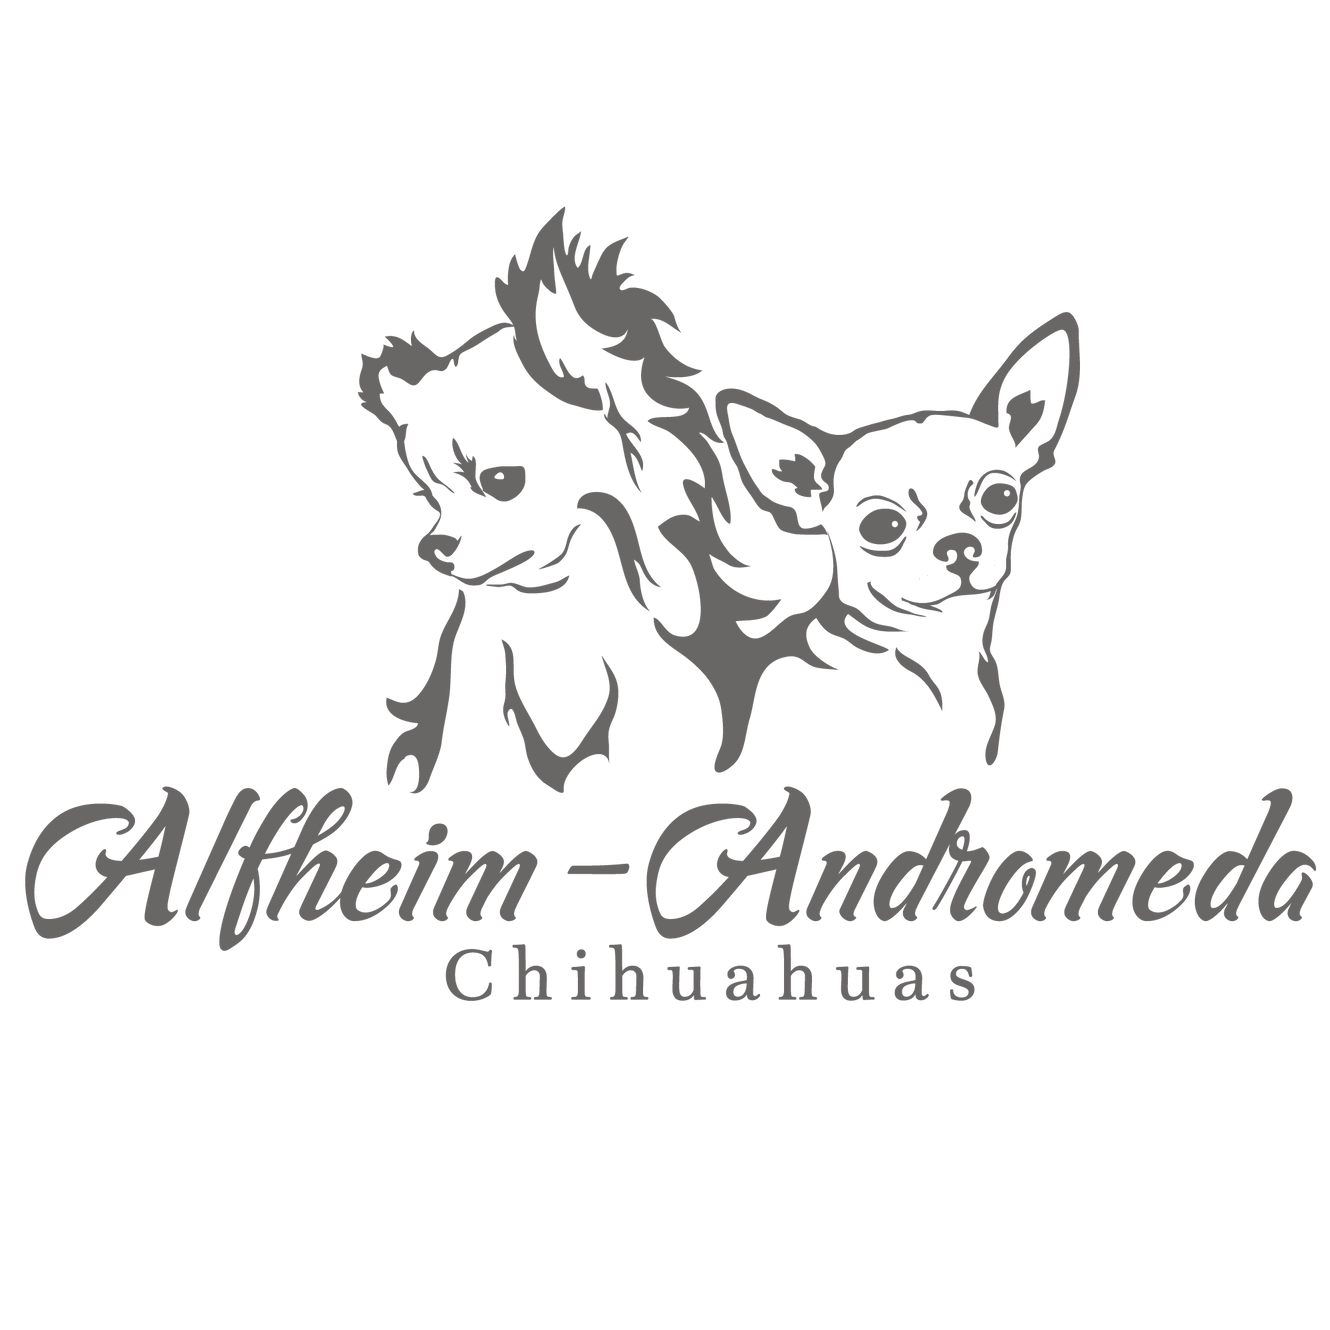 Chihuahuas for sale | New York | Alfheim - Andromeda Chihuahuas